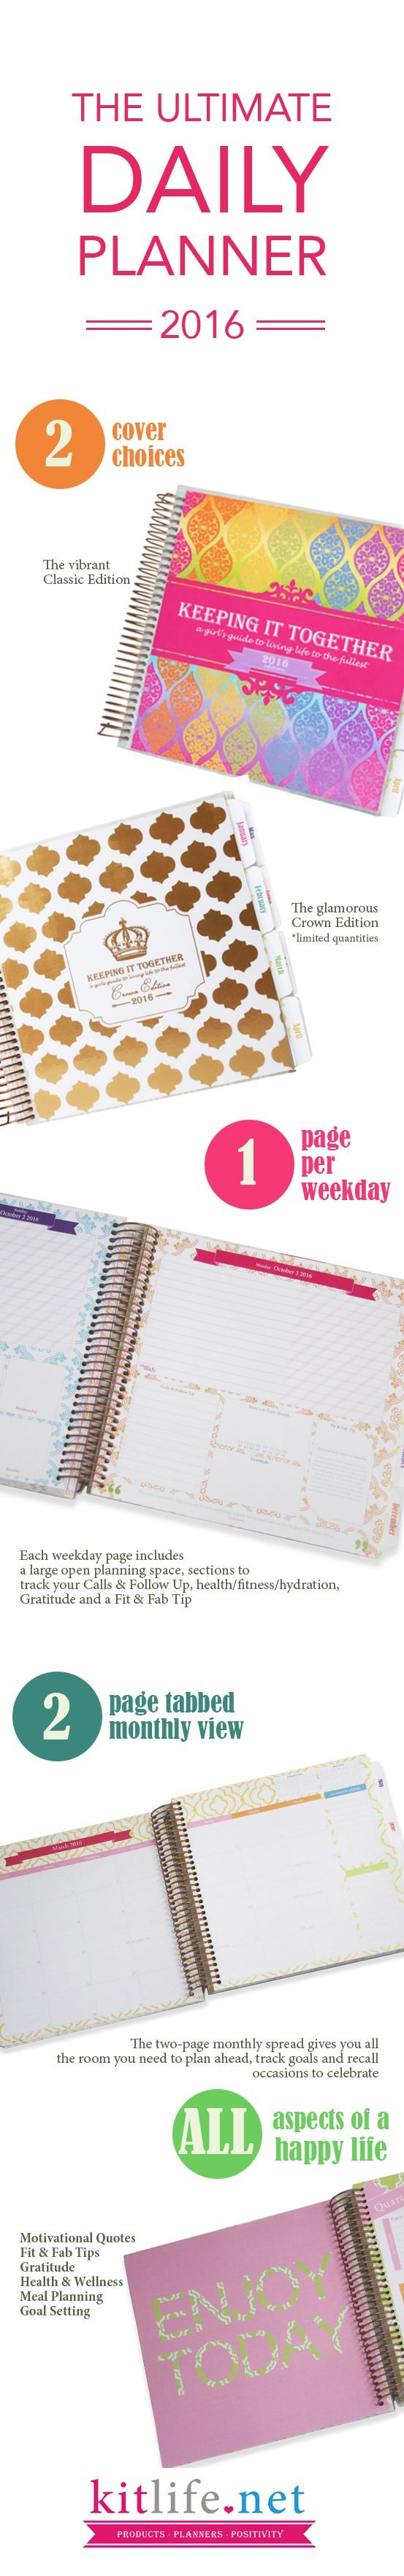 The BEST daily planner from kitlife